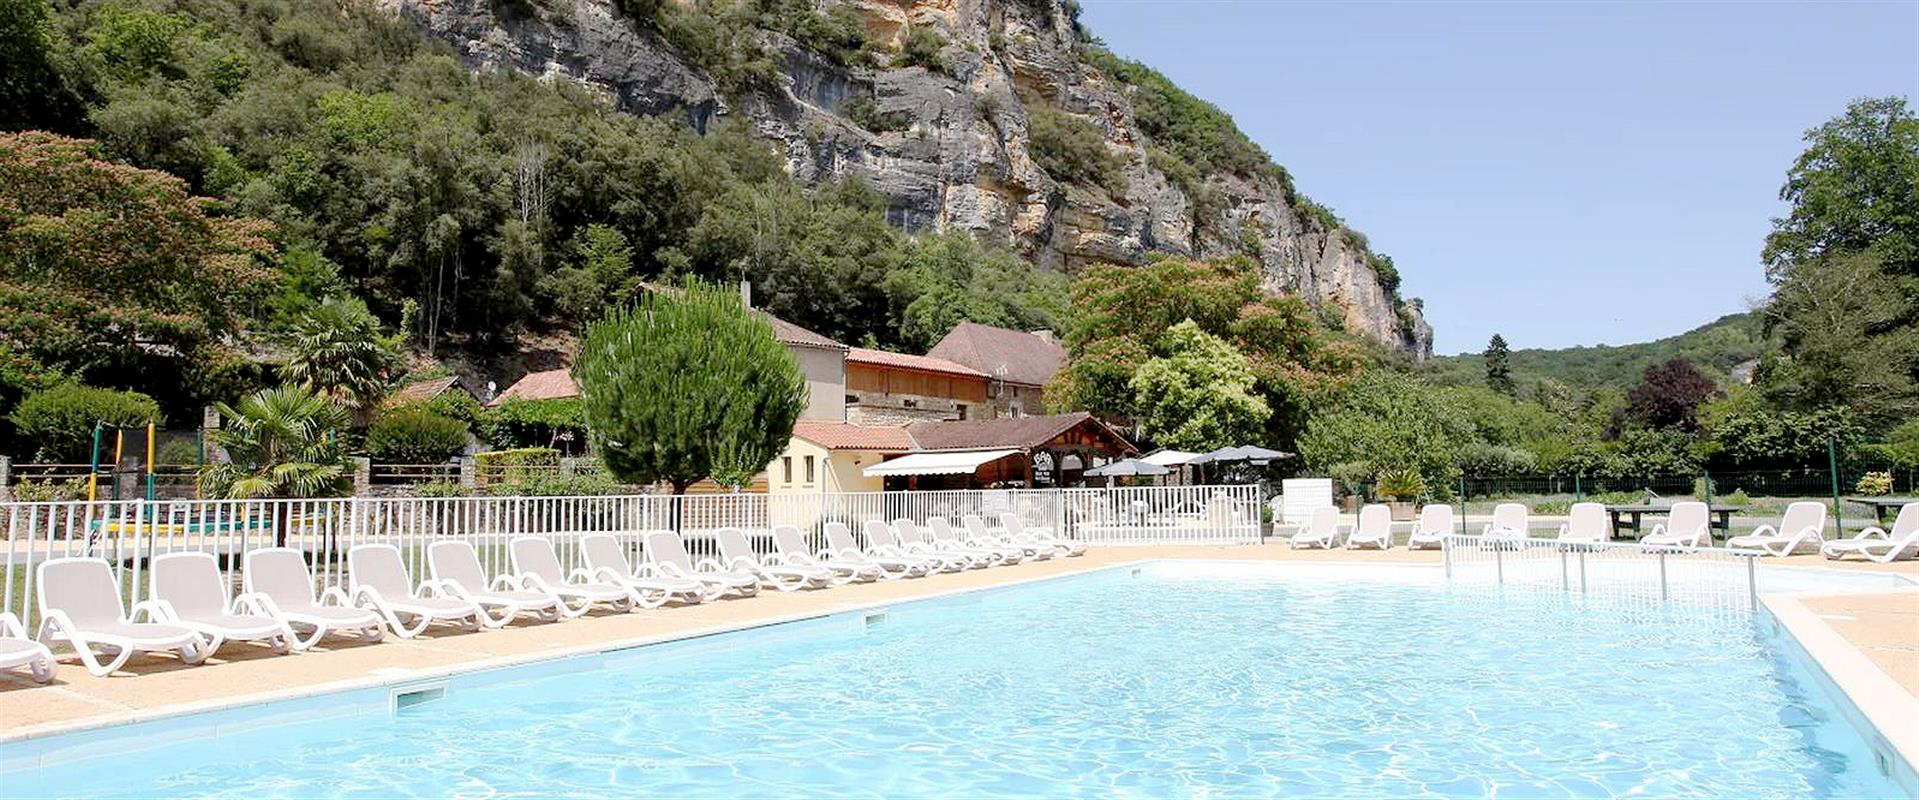 Mentions legales du camping 3 etoiles la plage camping for Camping dordogne sarlat avec piscine